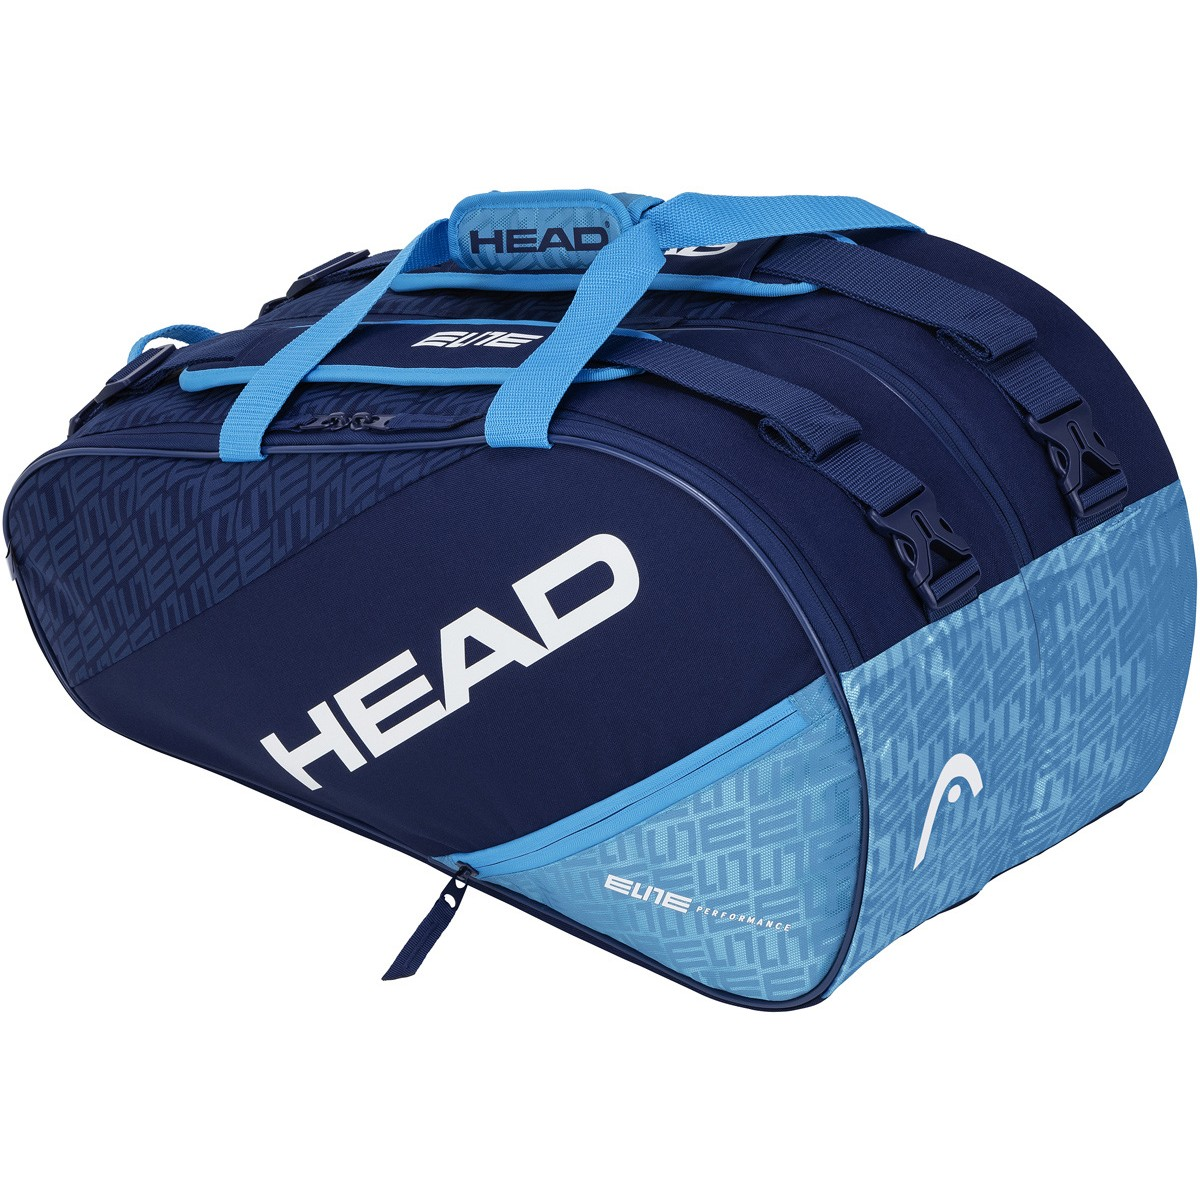 Sac de padel head elite supercombi